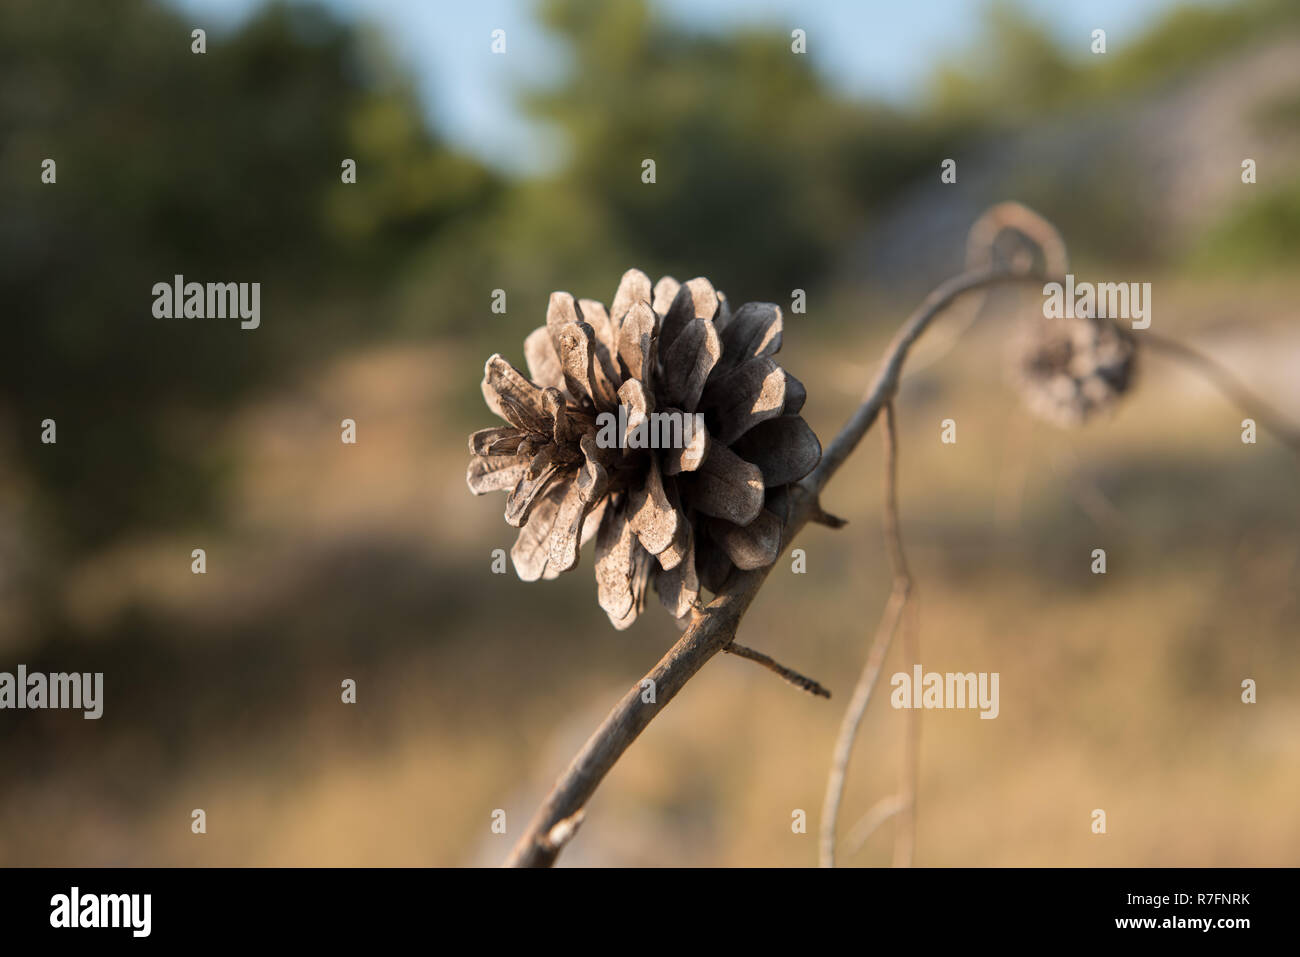 Small brown pine cone on a dry branch. Blurred background. Pine seed - Stock Image